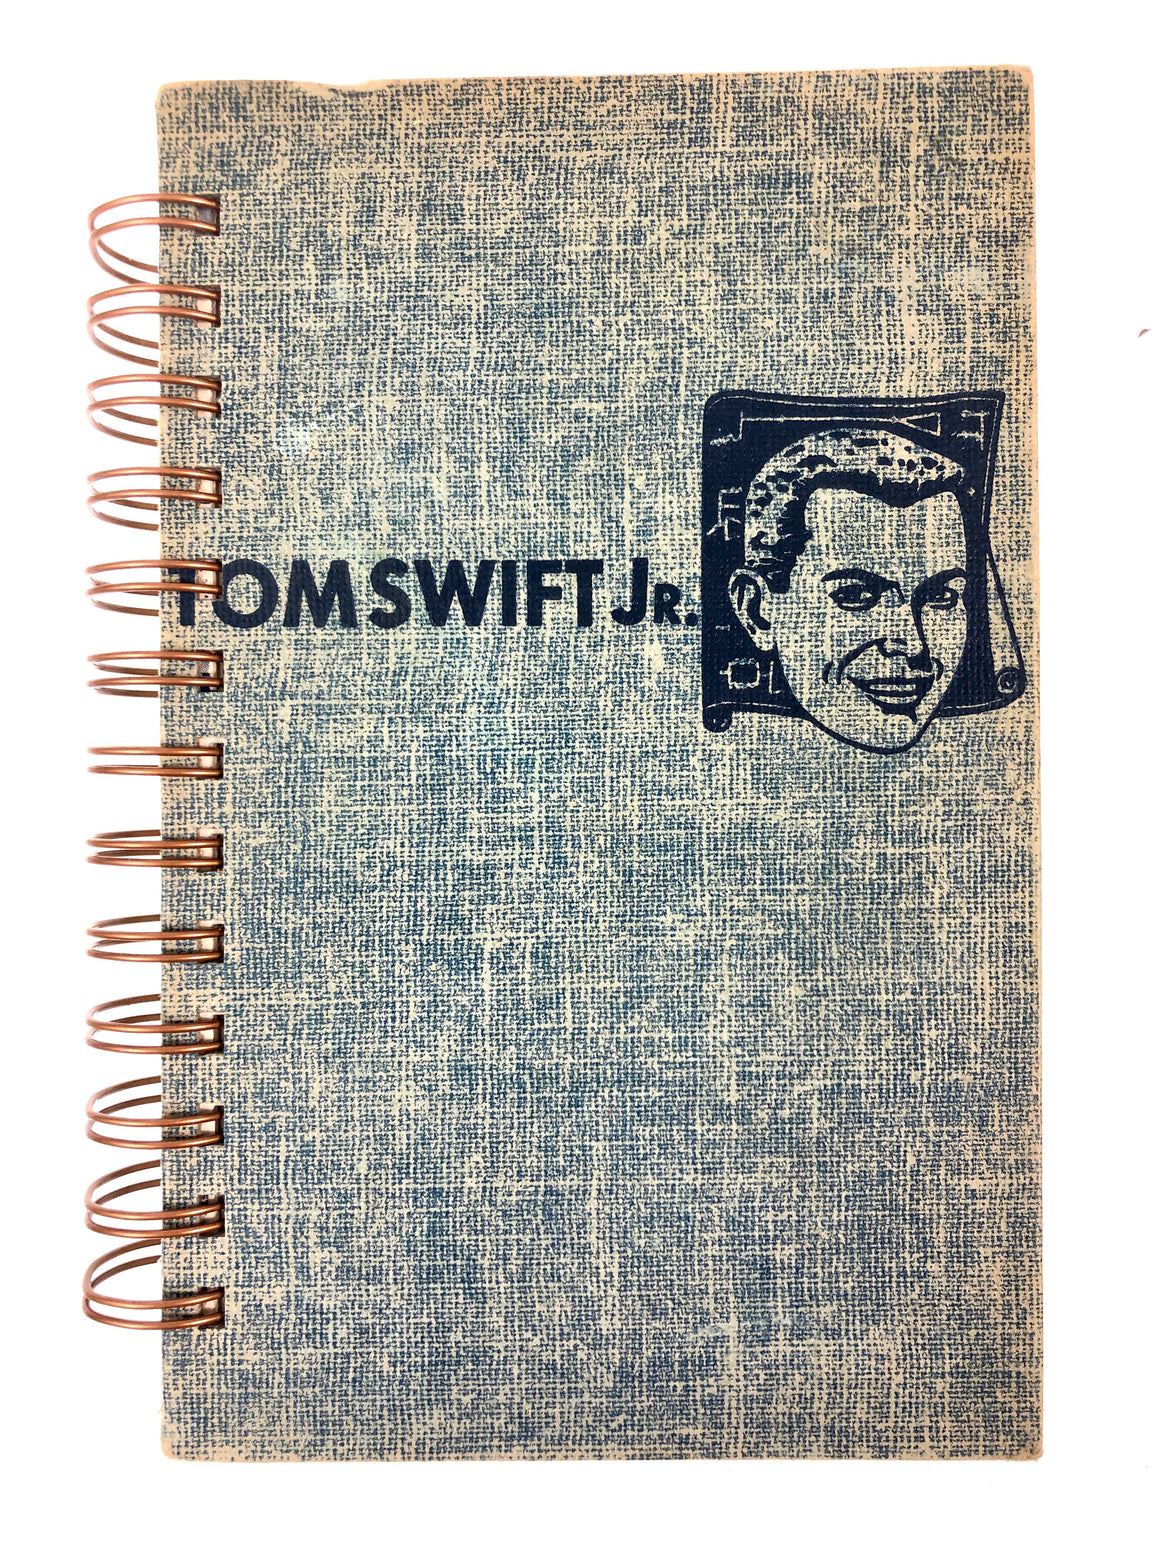 Tom Swift Jr. Vintage Cover-Red Barn Collections